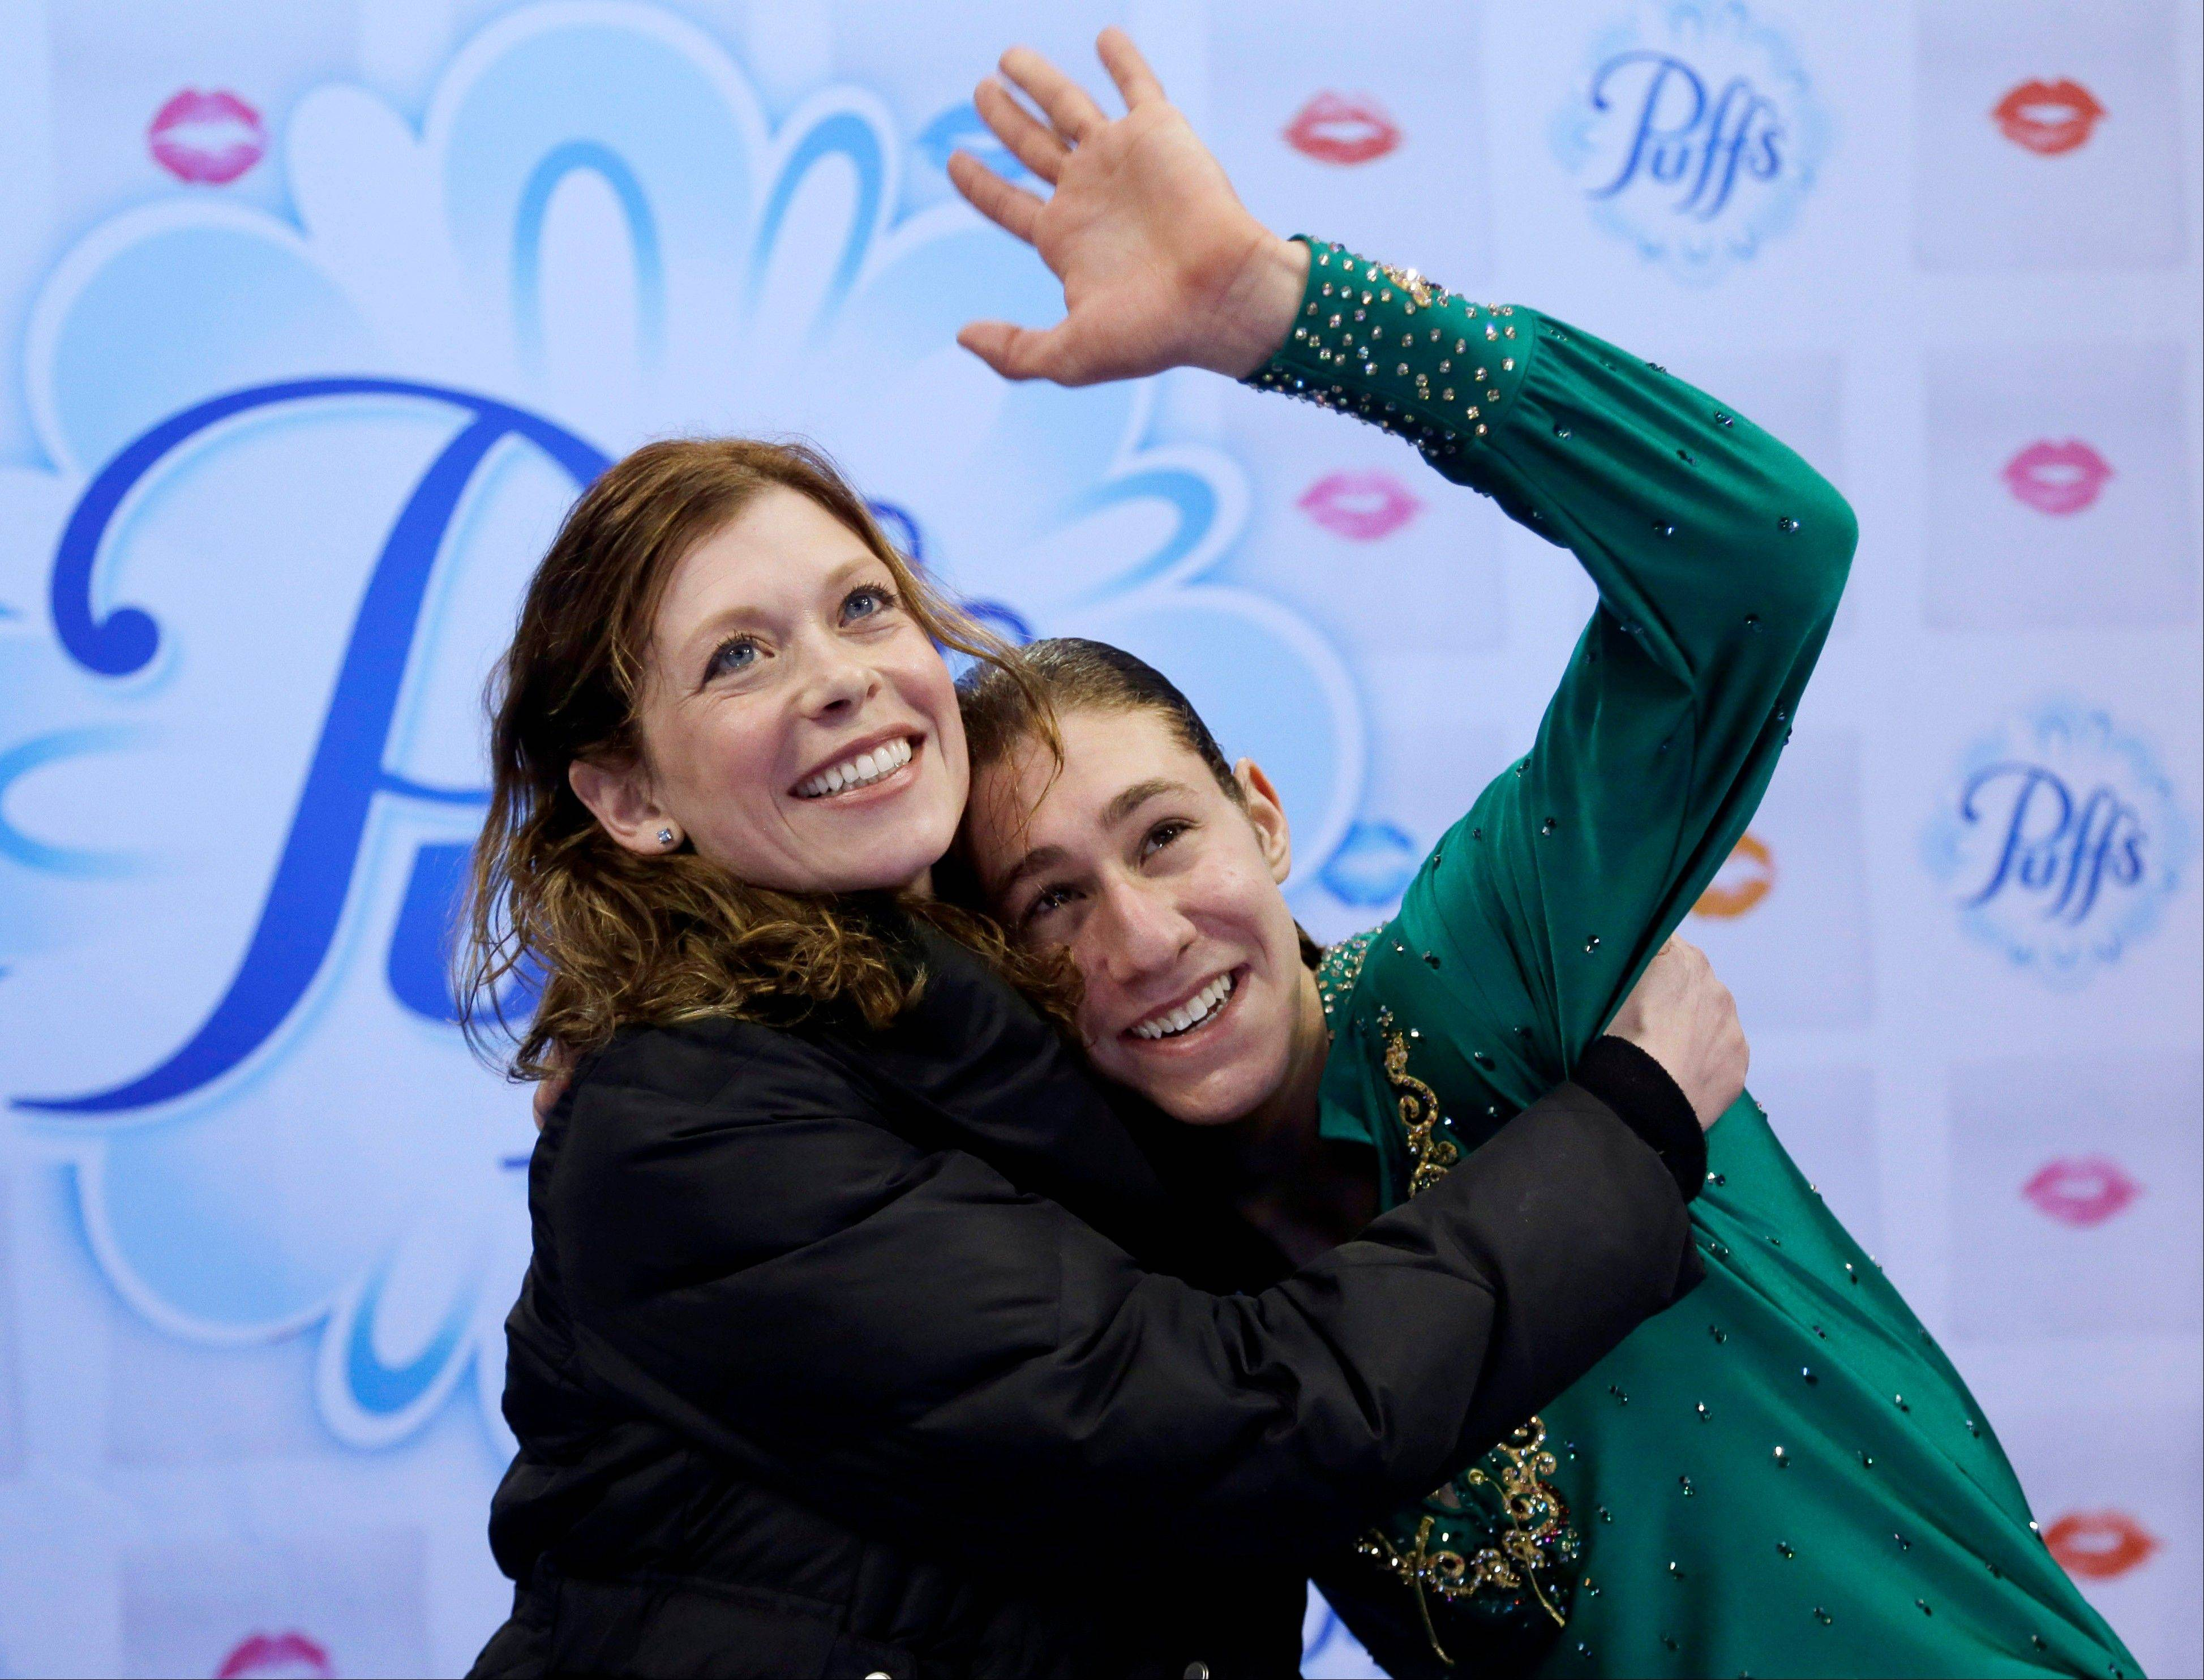 U.S. Men's Figure Skating Team member Jason Brown, of Highland Park, right, celebrates with his coach Kori Ade, left, of Northbrook, after the U.S. Figure Skating Championships on Jan. 12.